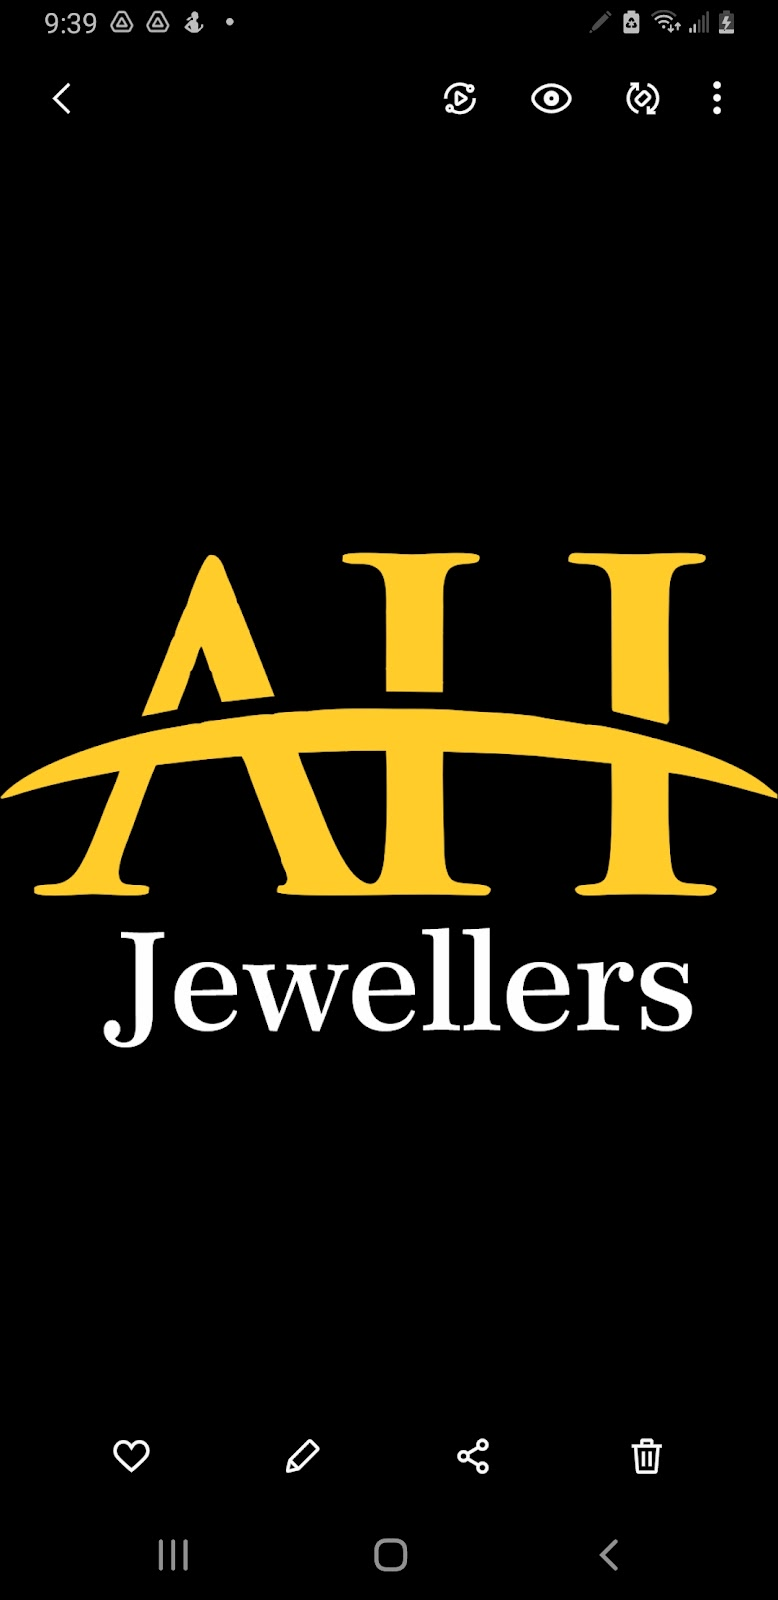 Al Hassnain jewellers inc | jewelry store | 7071 Airport Rd Unit 9A, Mississauga, ON L4T 4J3, Canada | 9056735656 OR +1 905-673-5656